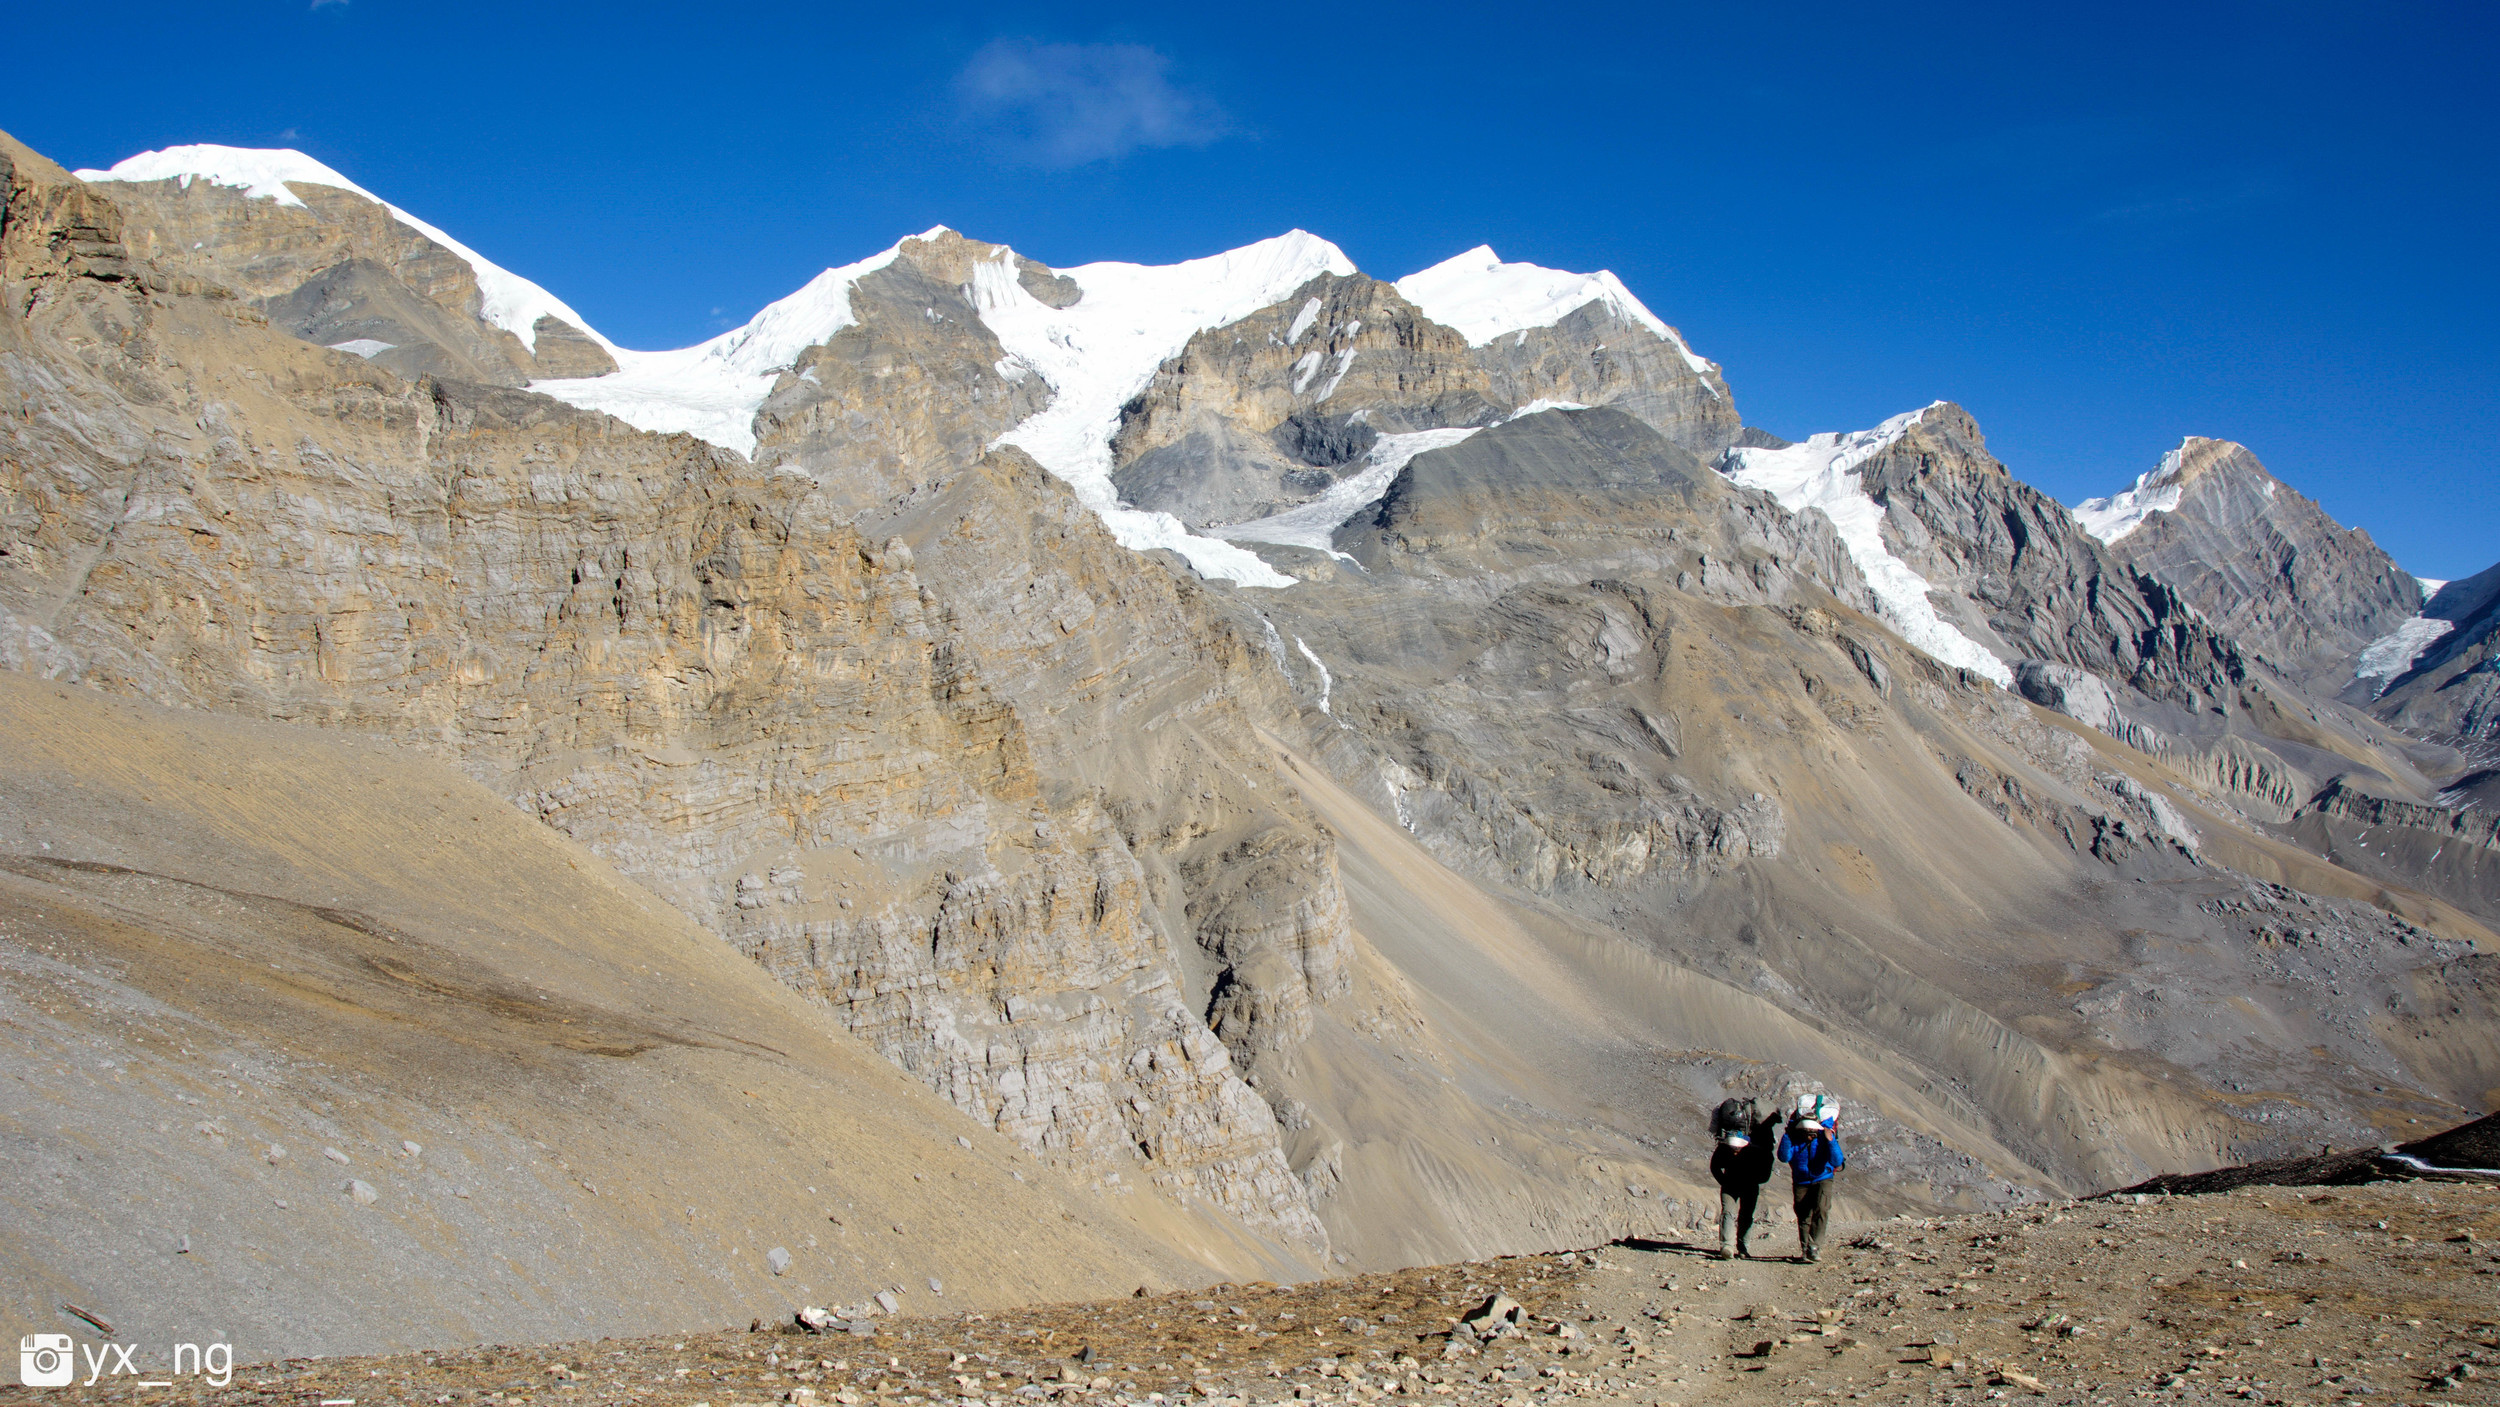 Heading up. Porters. Without them we will not be able to reach the summit or climb.